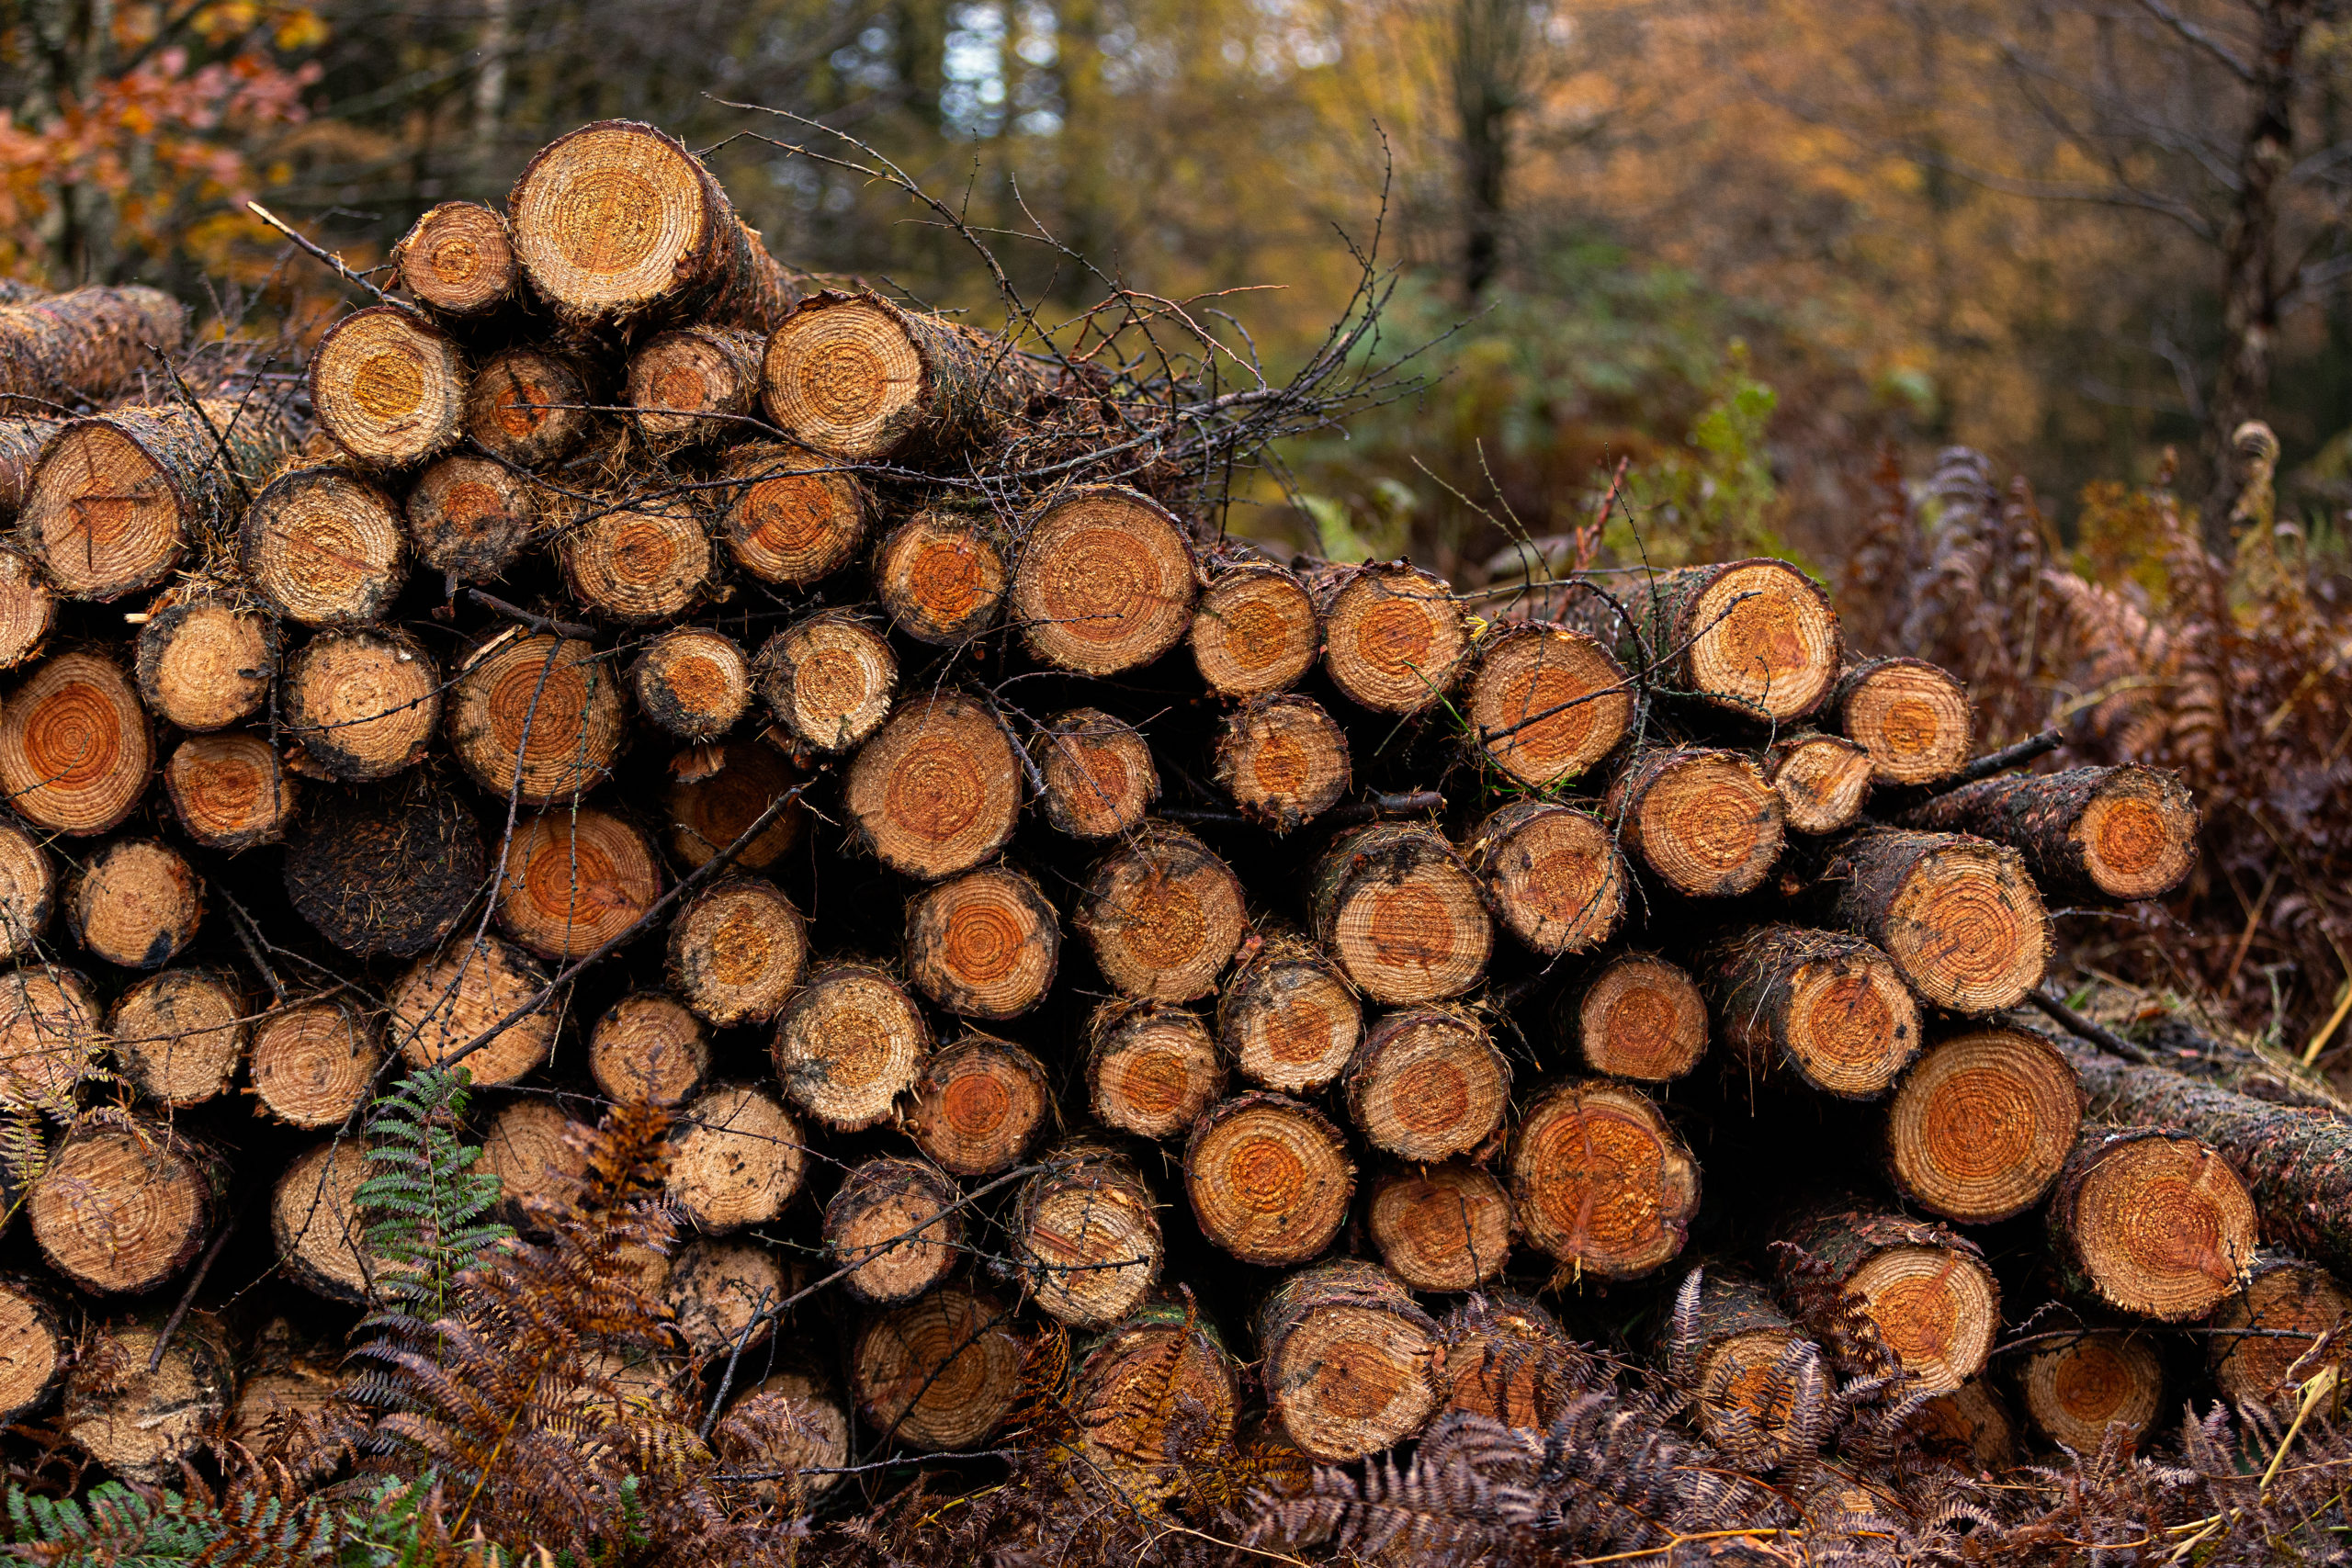 Timber harvesting has continued during the crisis, but at reduced levels.